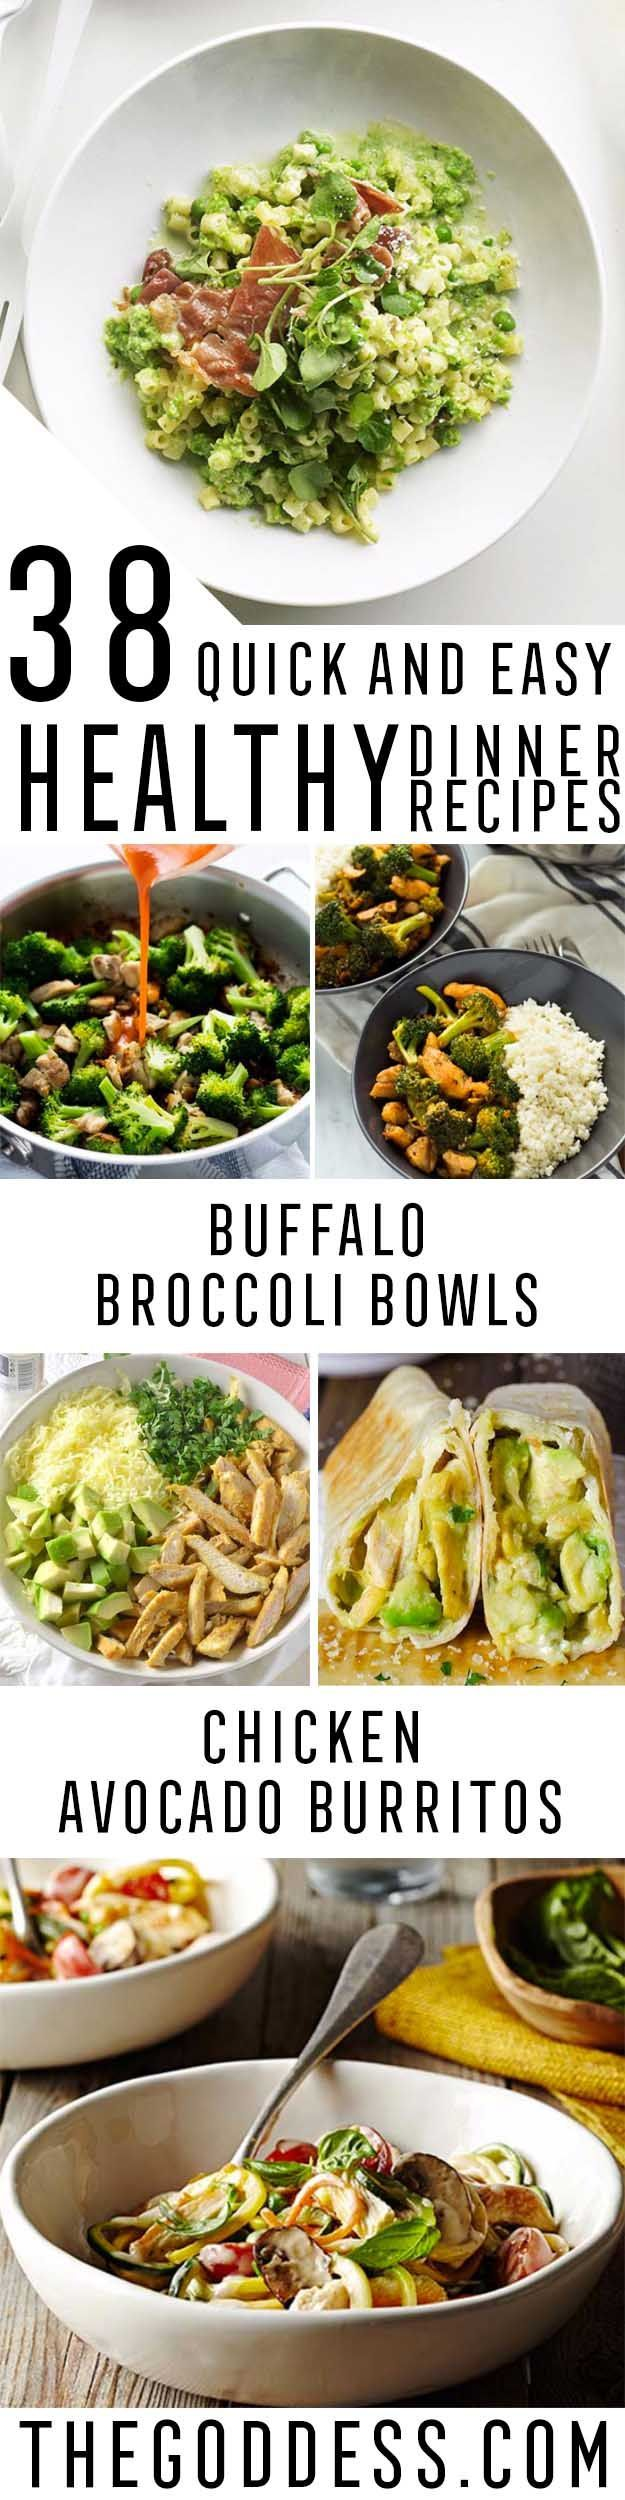 38 Quick and Easy Healthy Dinner Recipes | Best Recipes ...